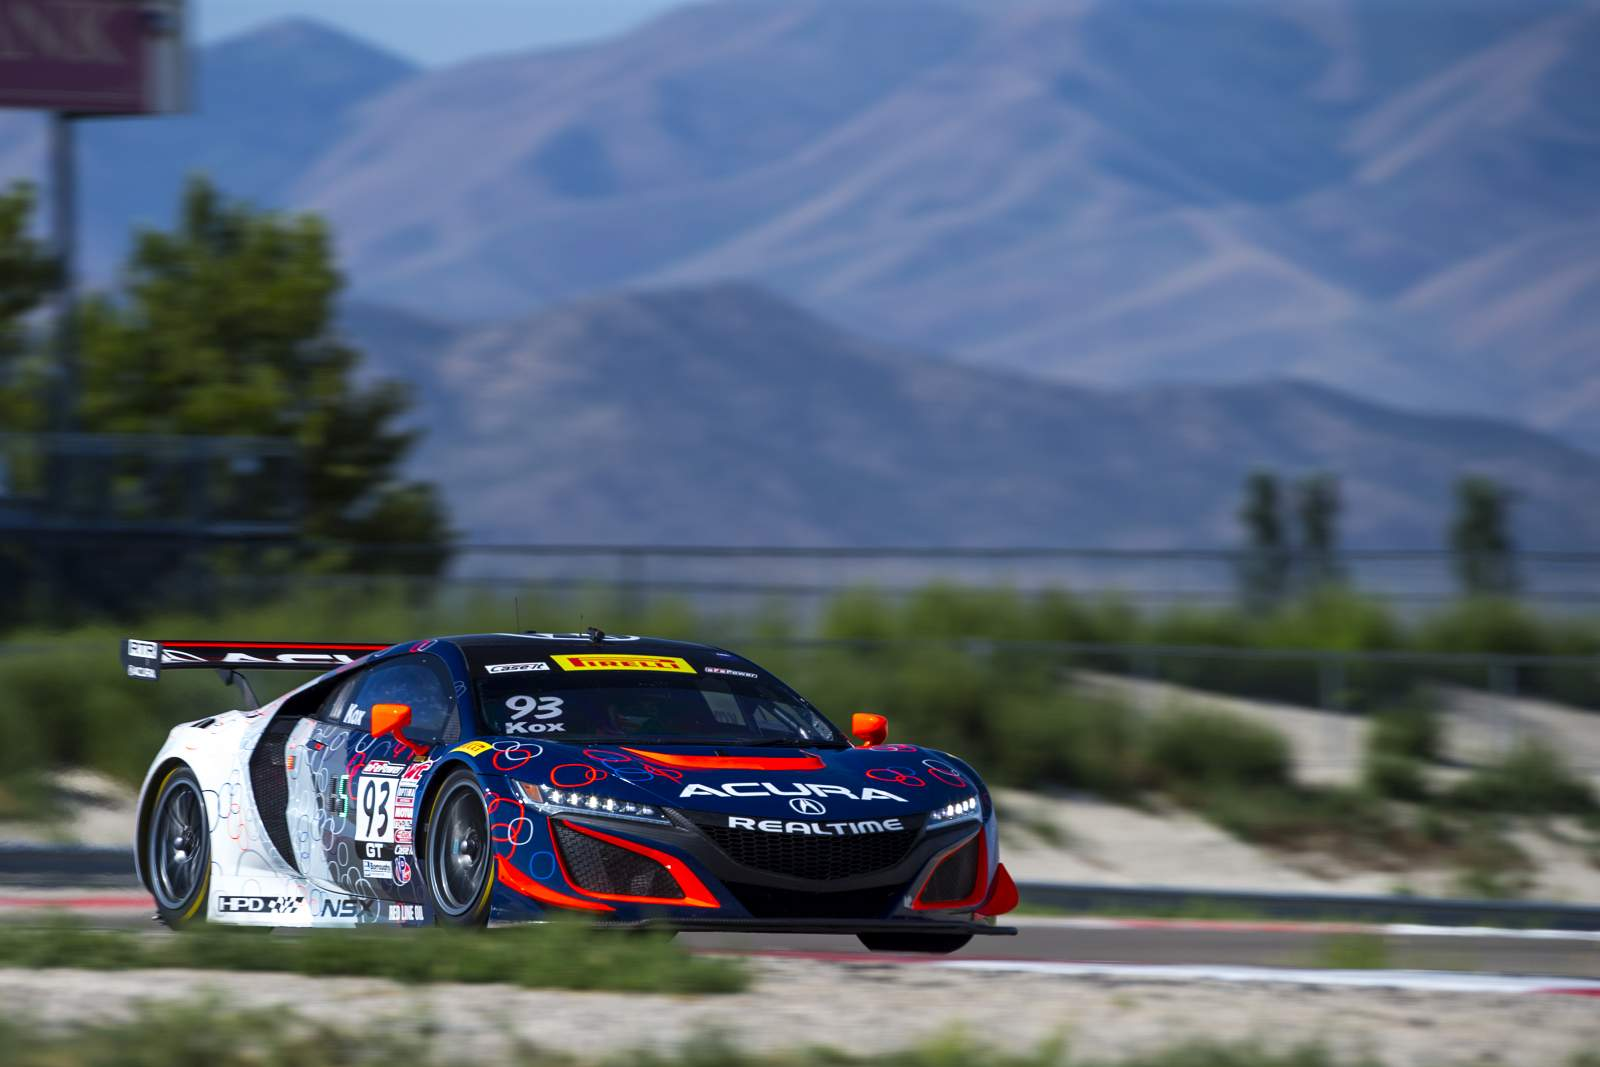 peter-kox-realtime-racing-pirelli-world-challenge-utah-motorsport-campus-02